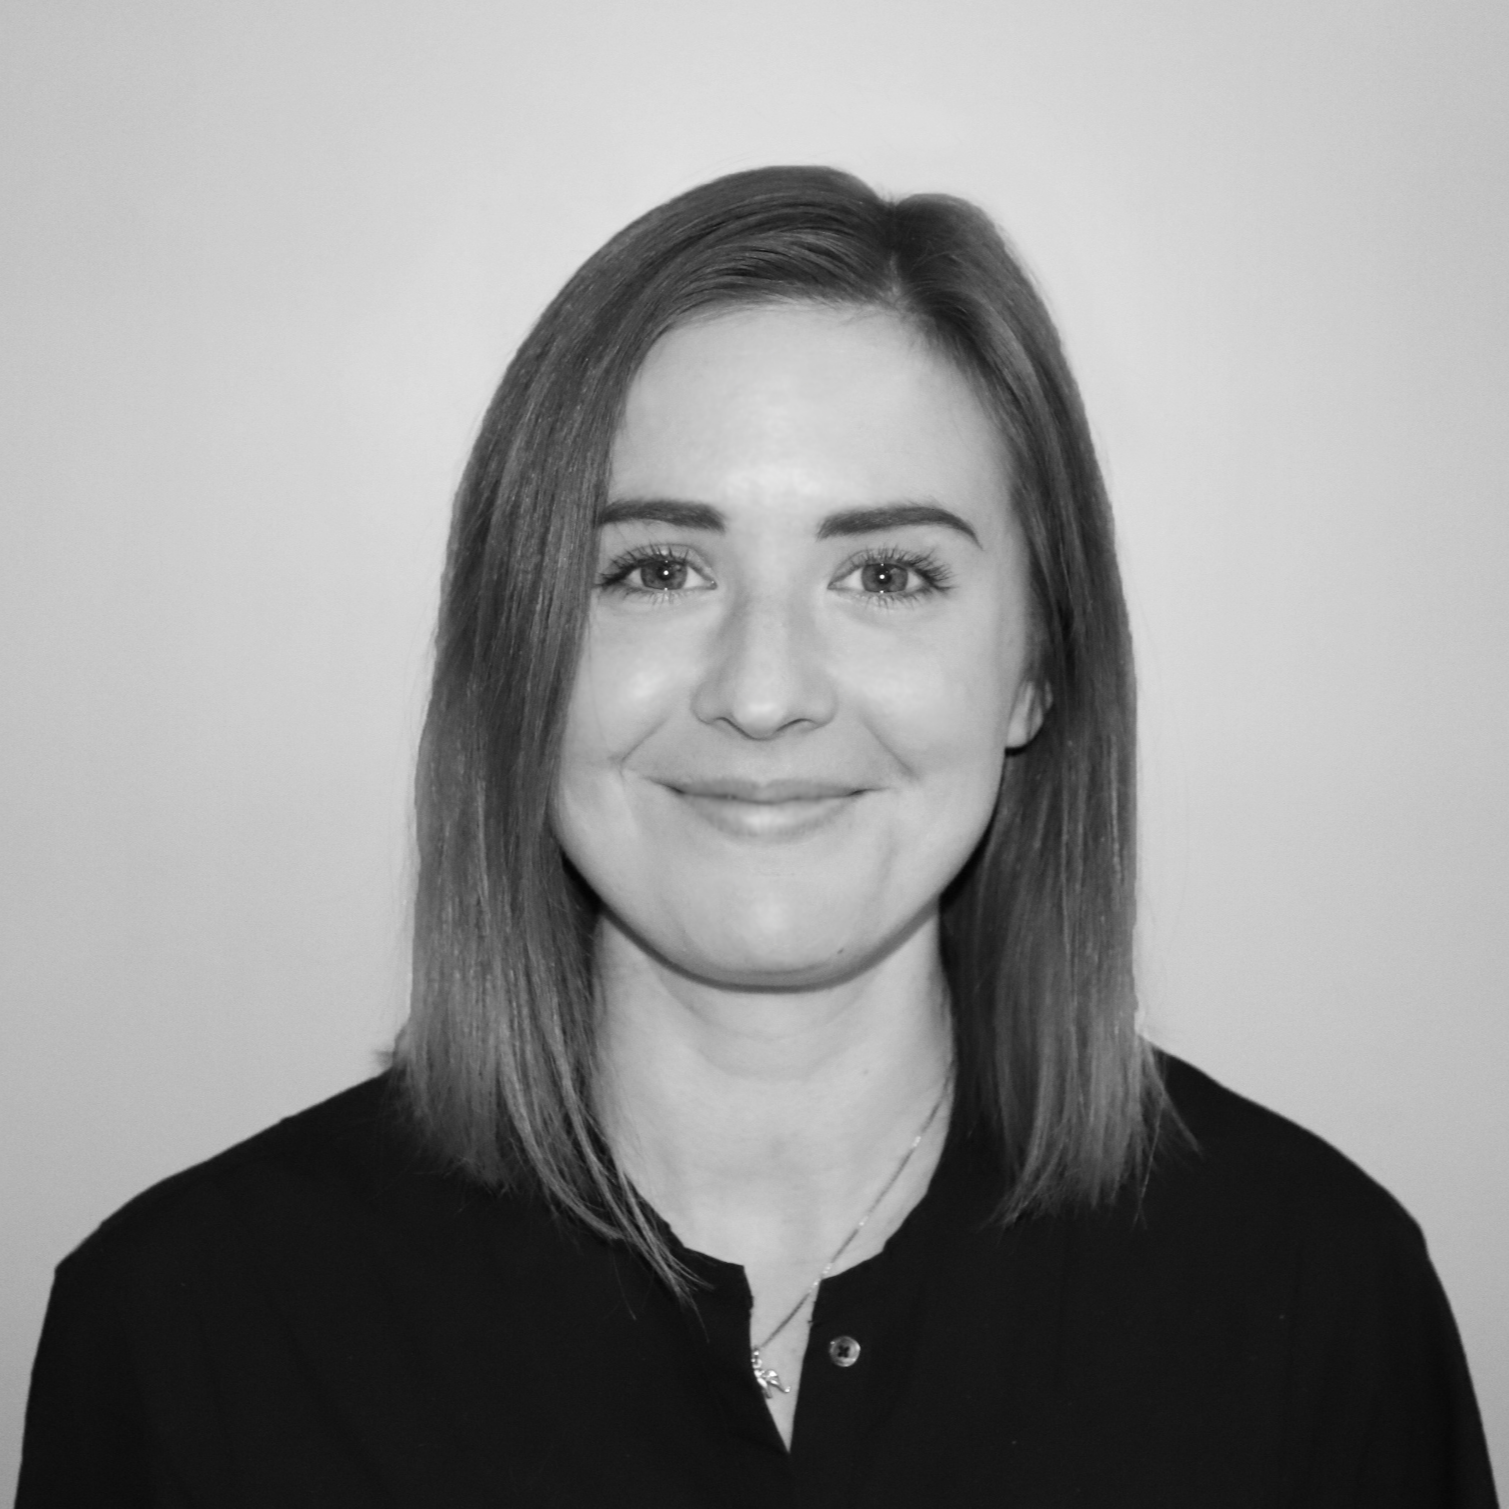 Carly McGregor - Community Engagement Manager